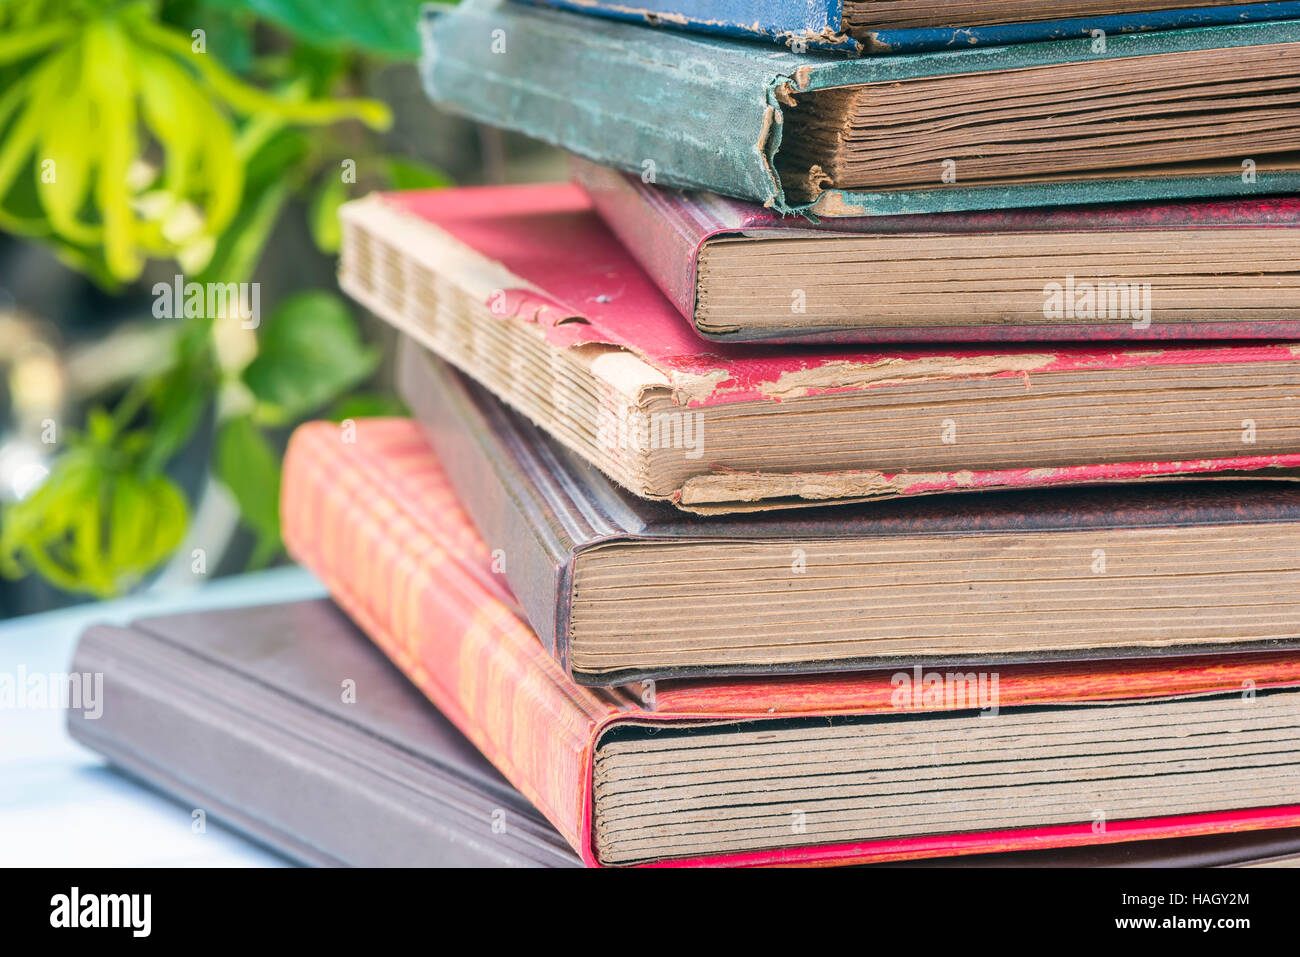 Stack of old stamp album in close up view. - Stock Image